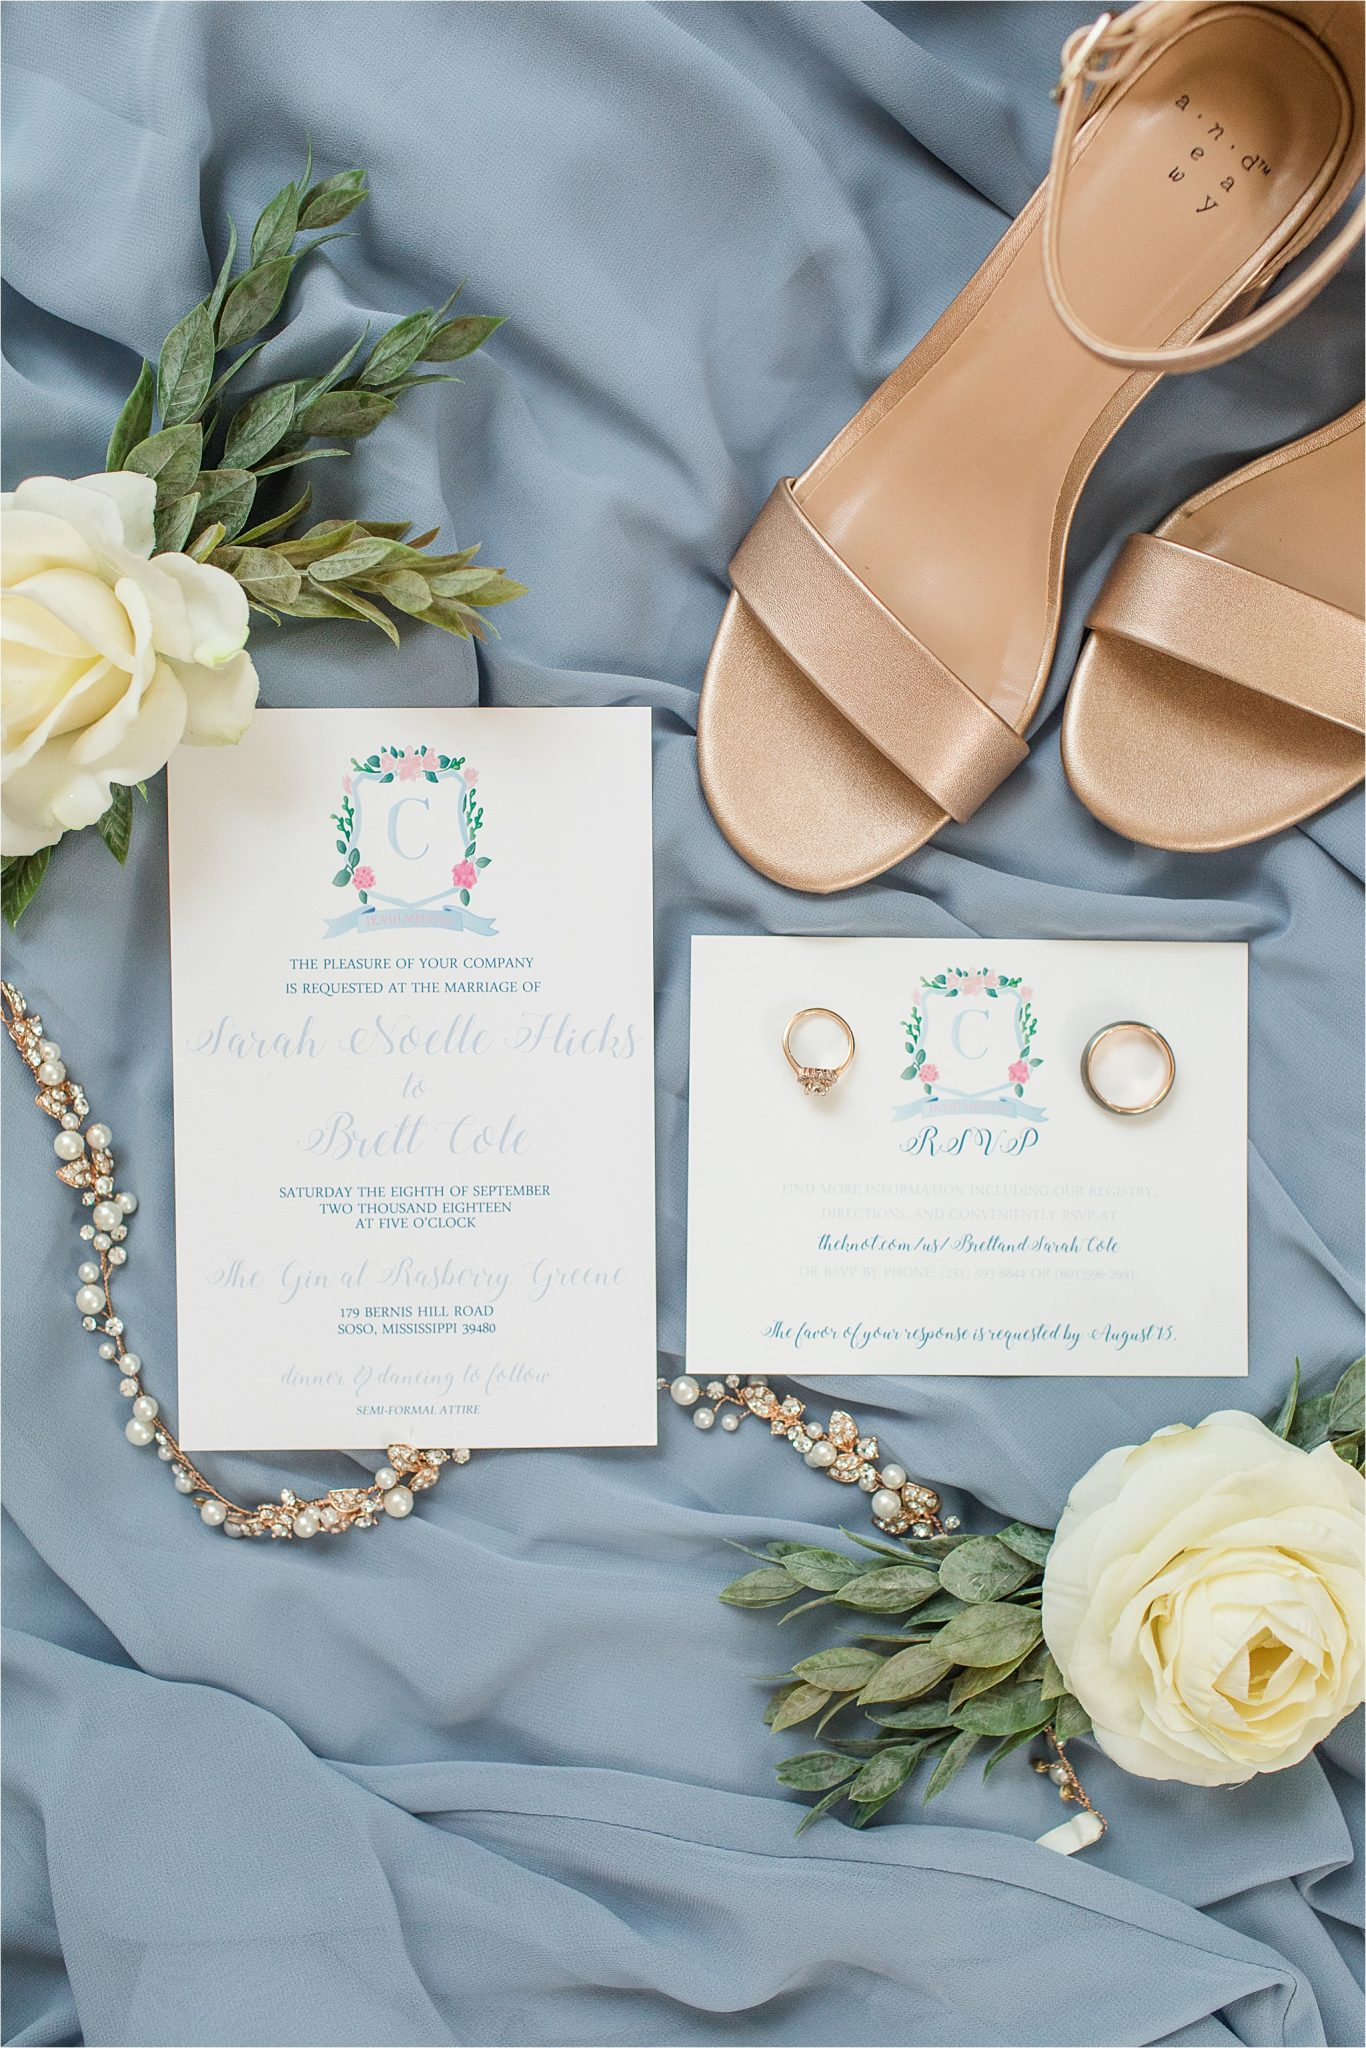 periwinkle-raspberry-wedding-details-invitations-watercolor-family-crest-white-roses-pearls